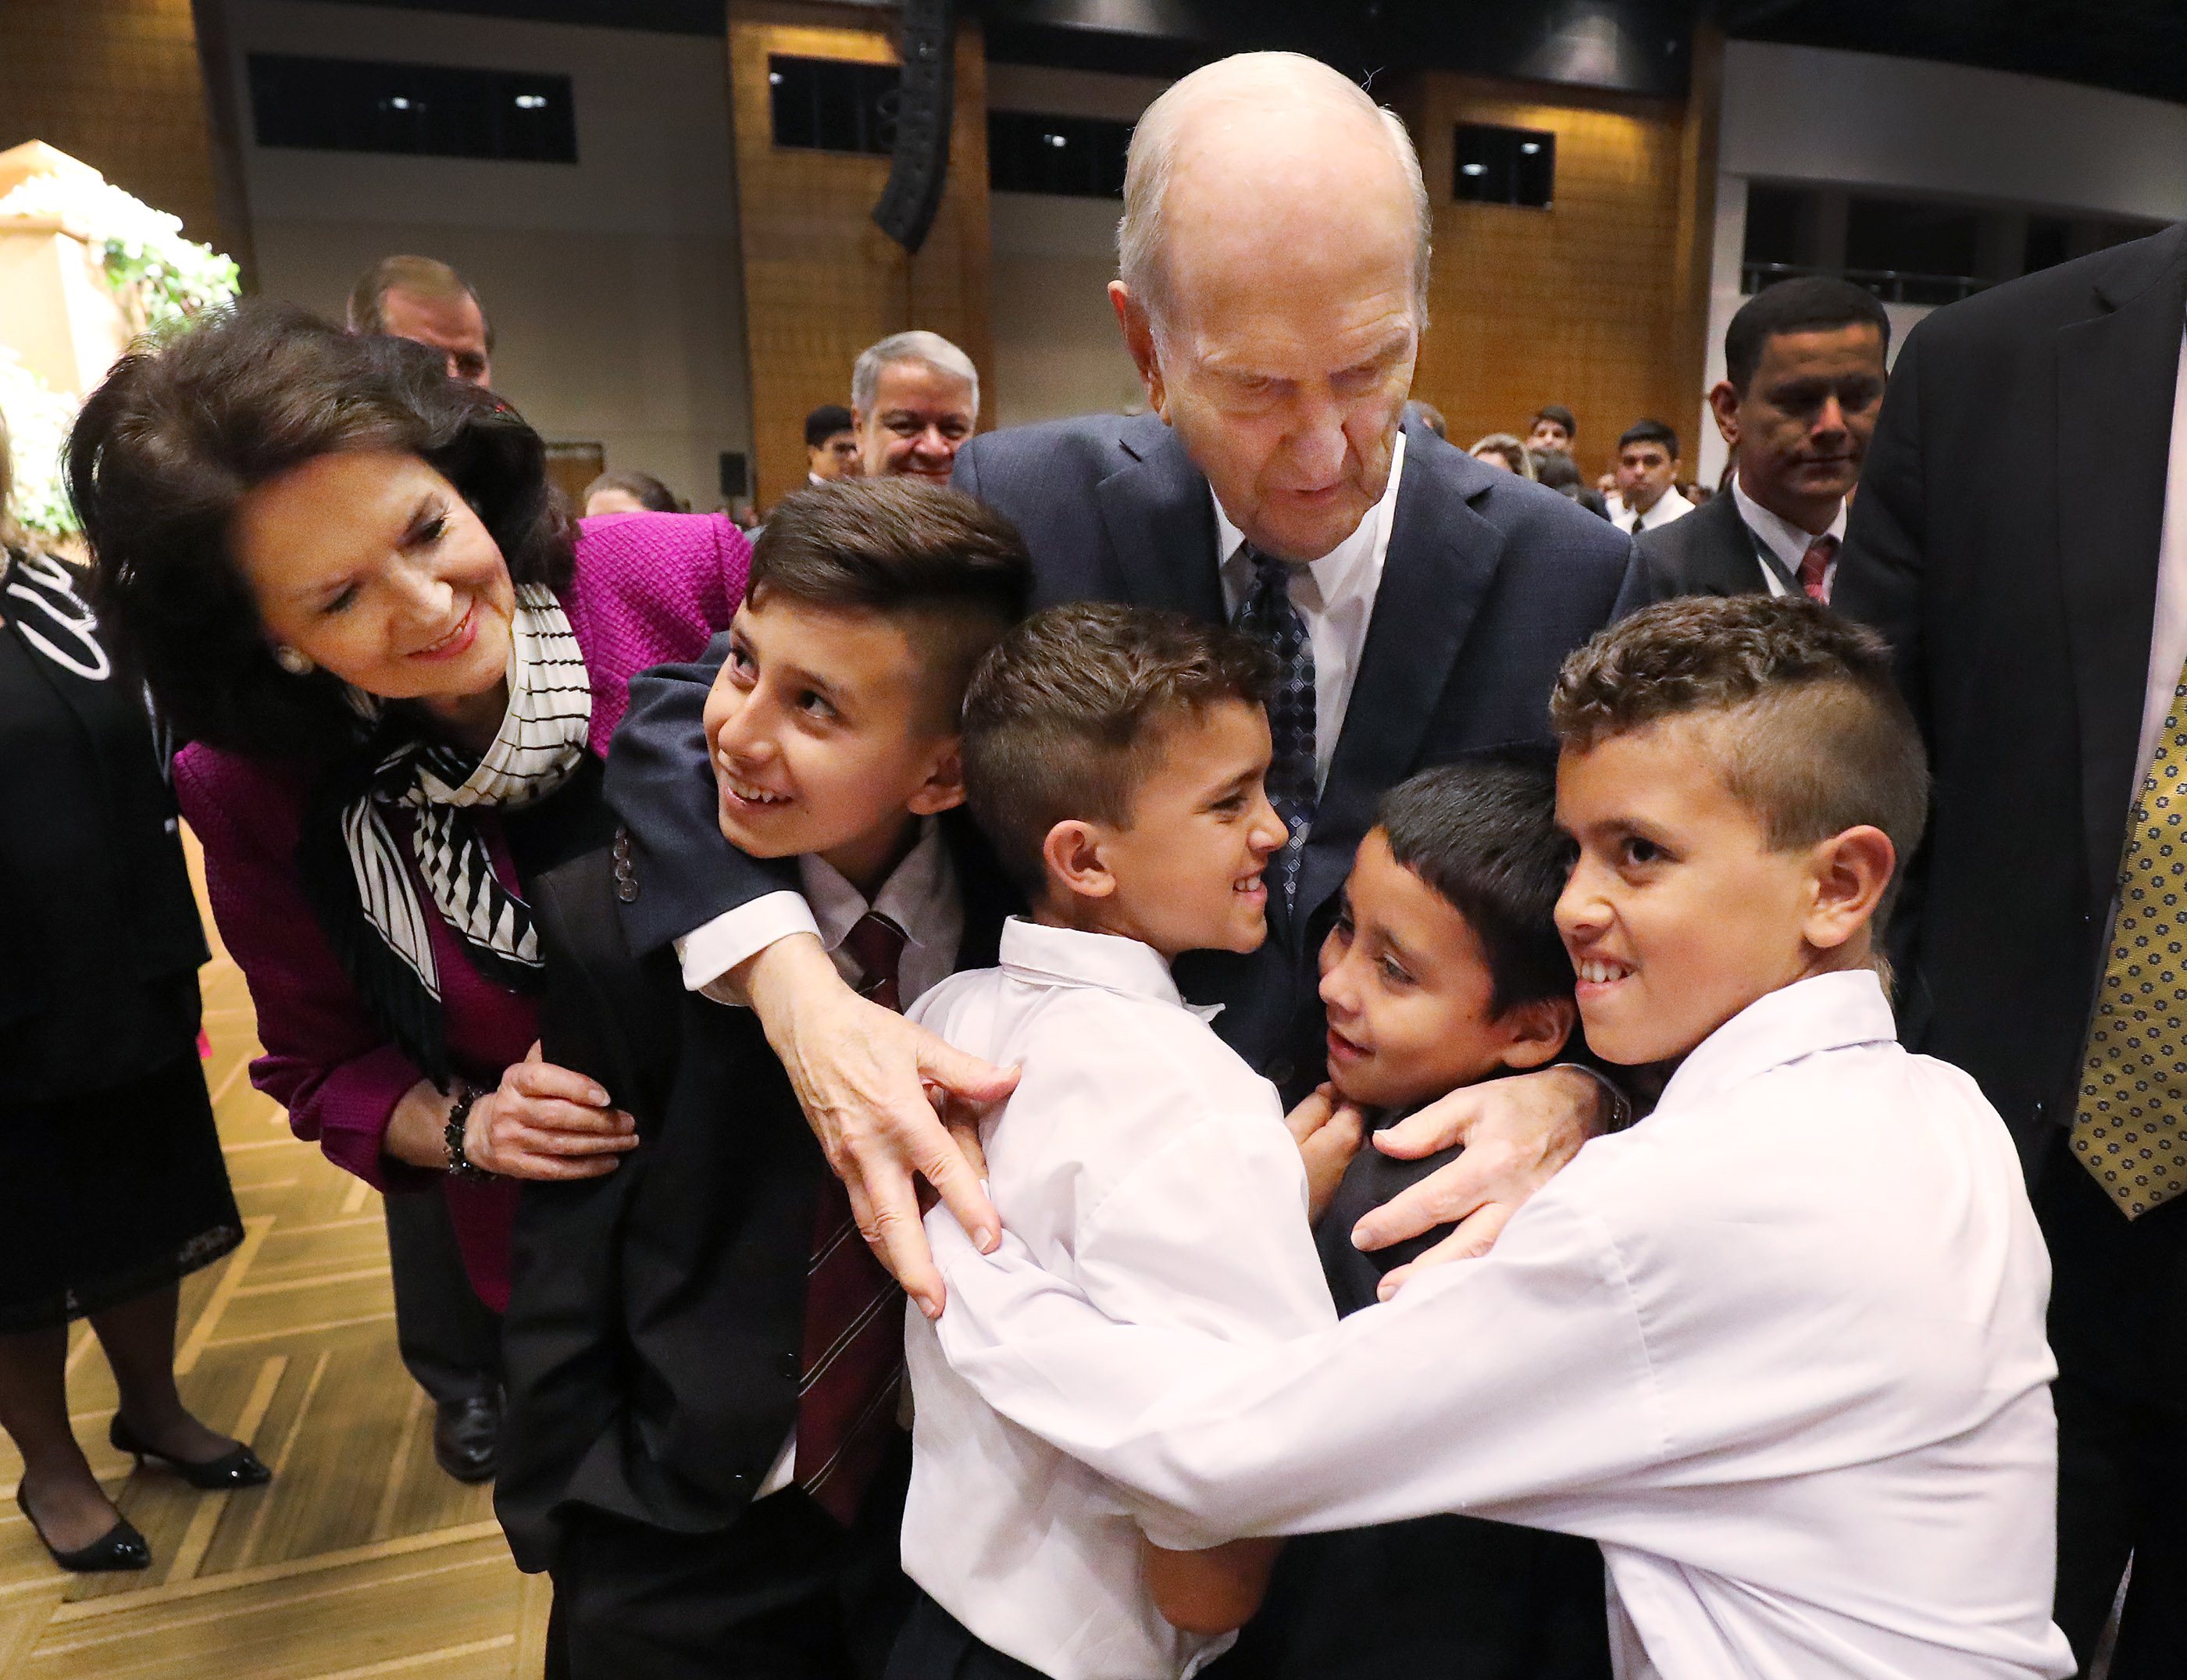 President Russell M. Nelson and his wife, Sister Wendy Nelson, hug children after a devotional in Asuncion, Paraguay, on Monday, Oct. 22, 2018.